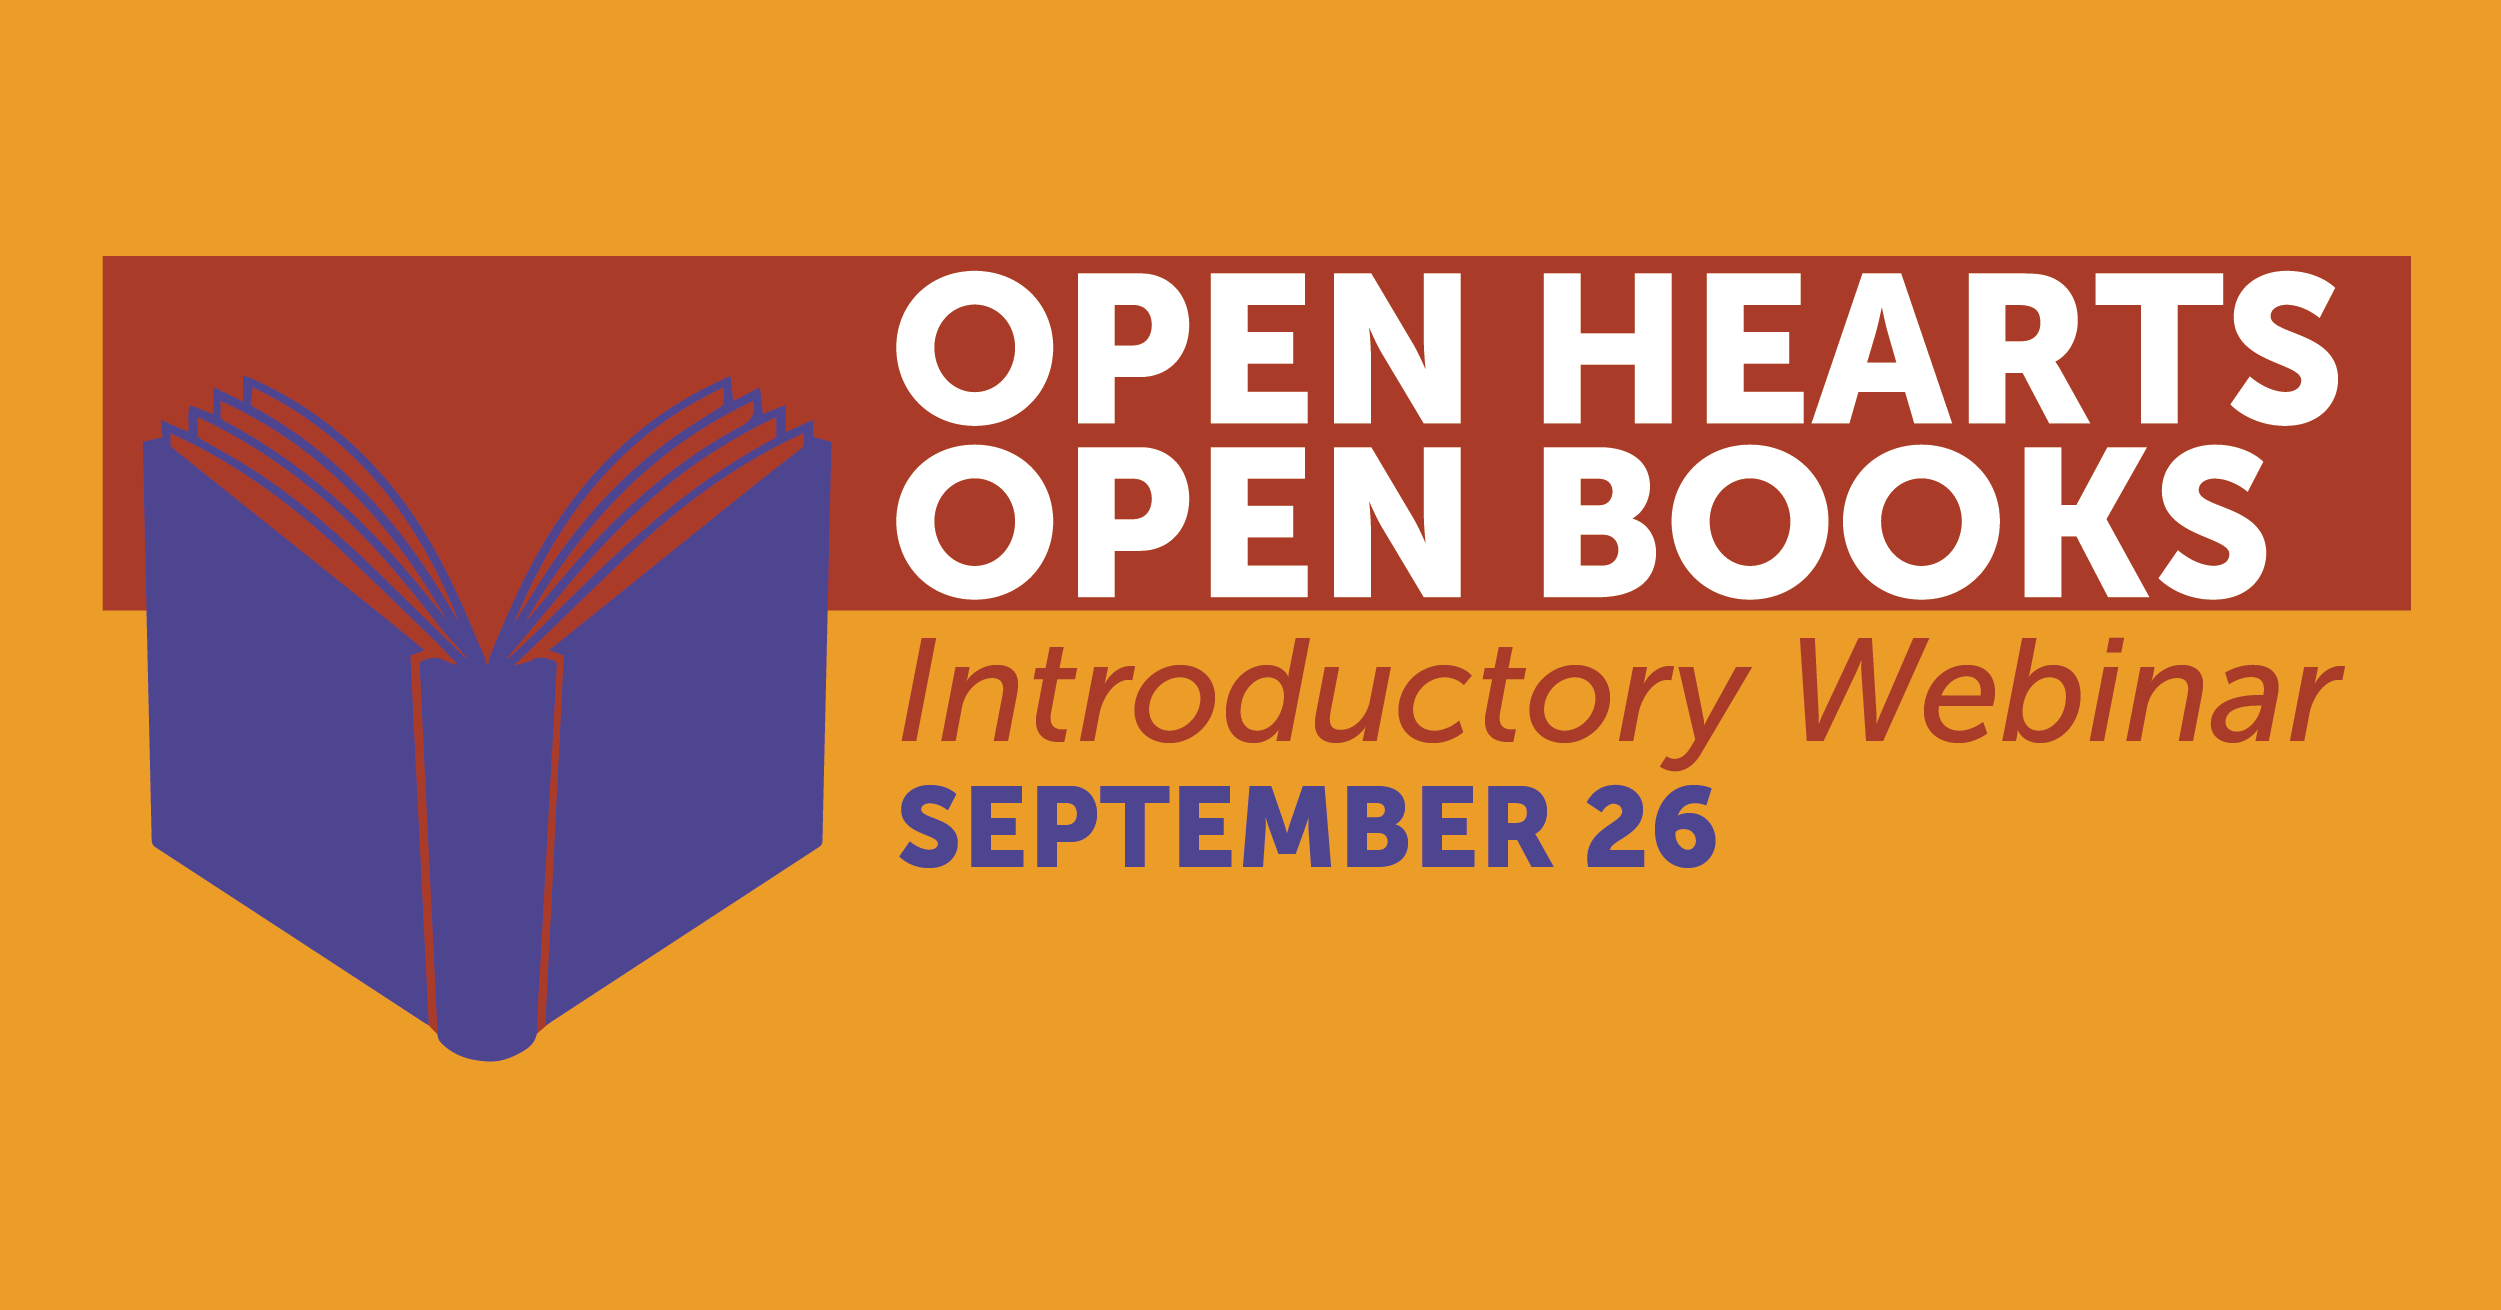 Open Hearts, Open Books Introductory Webinar